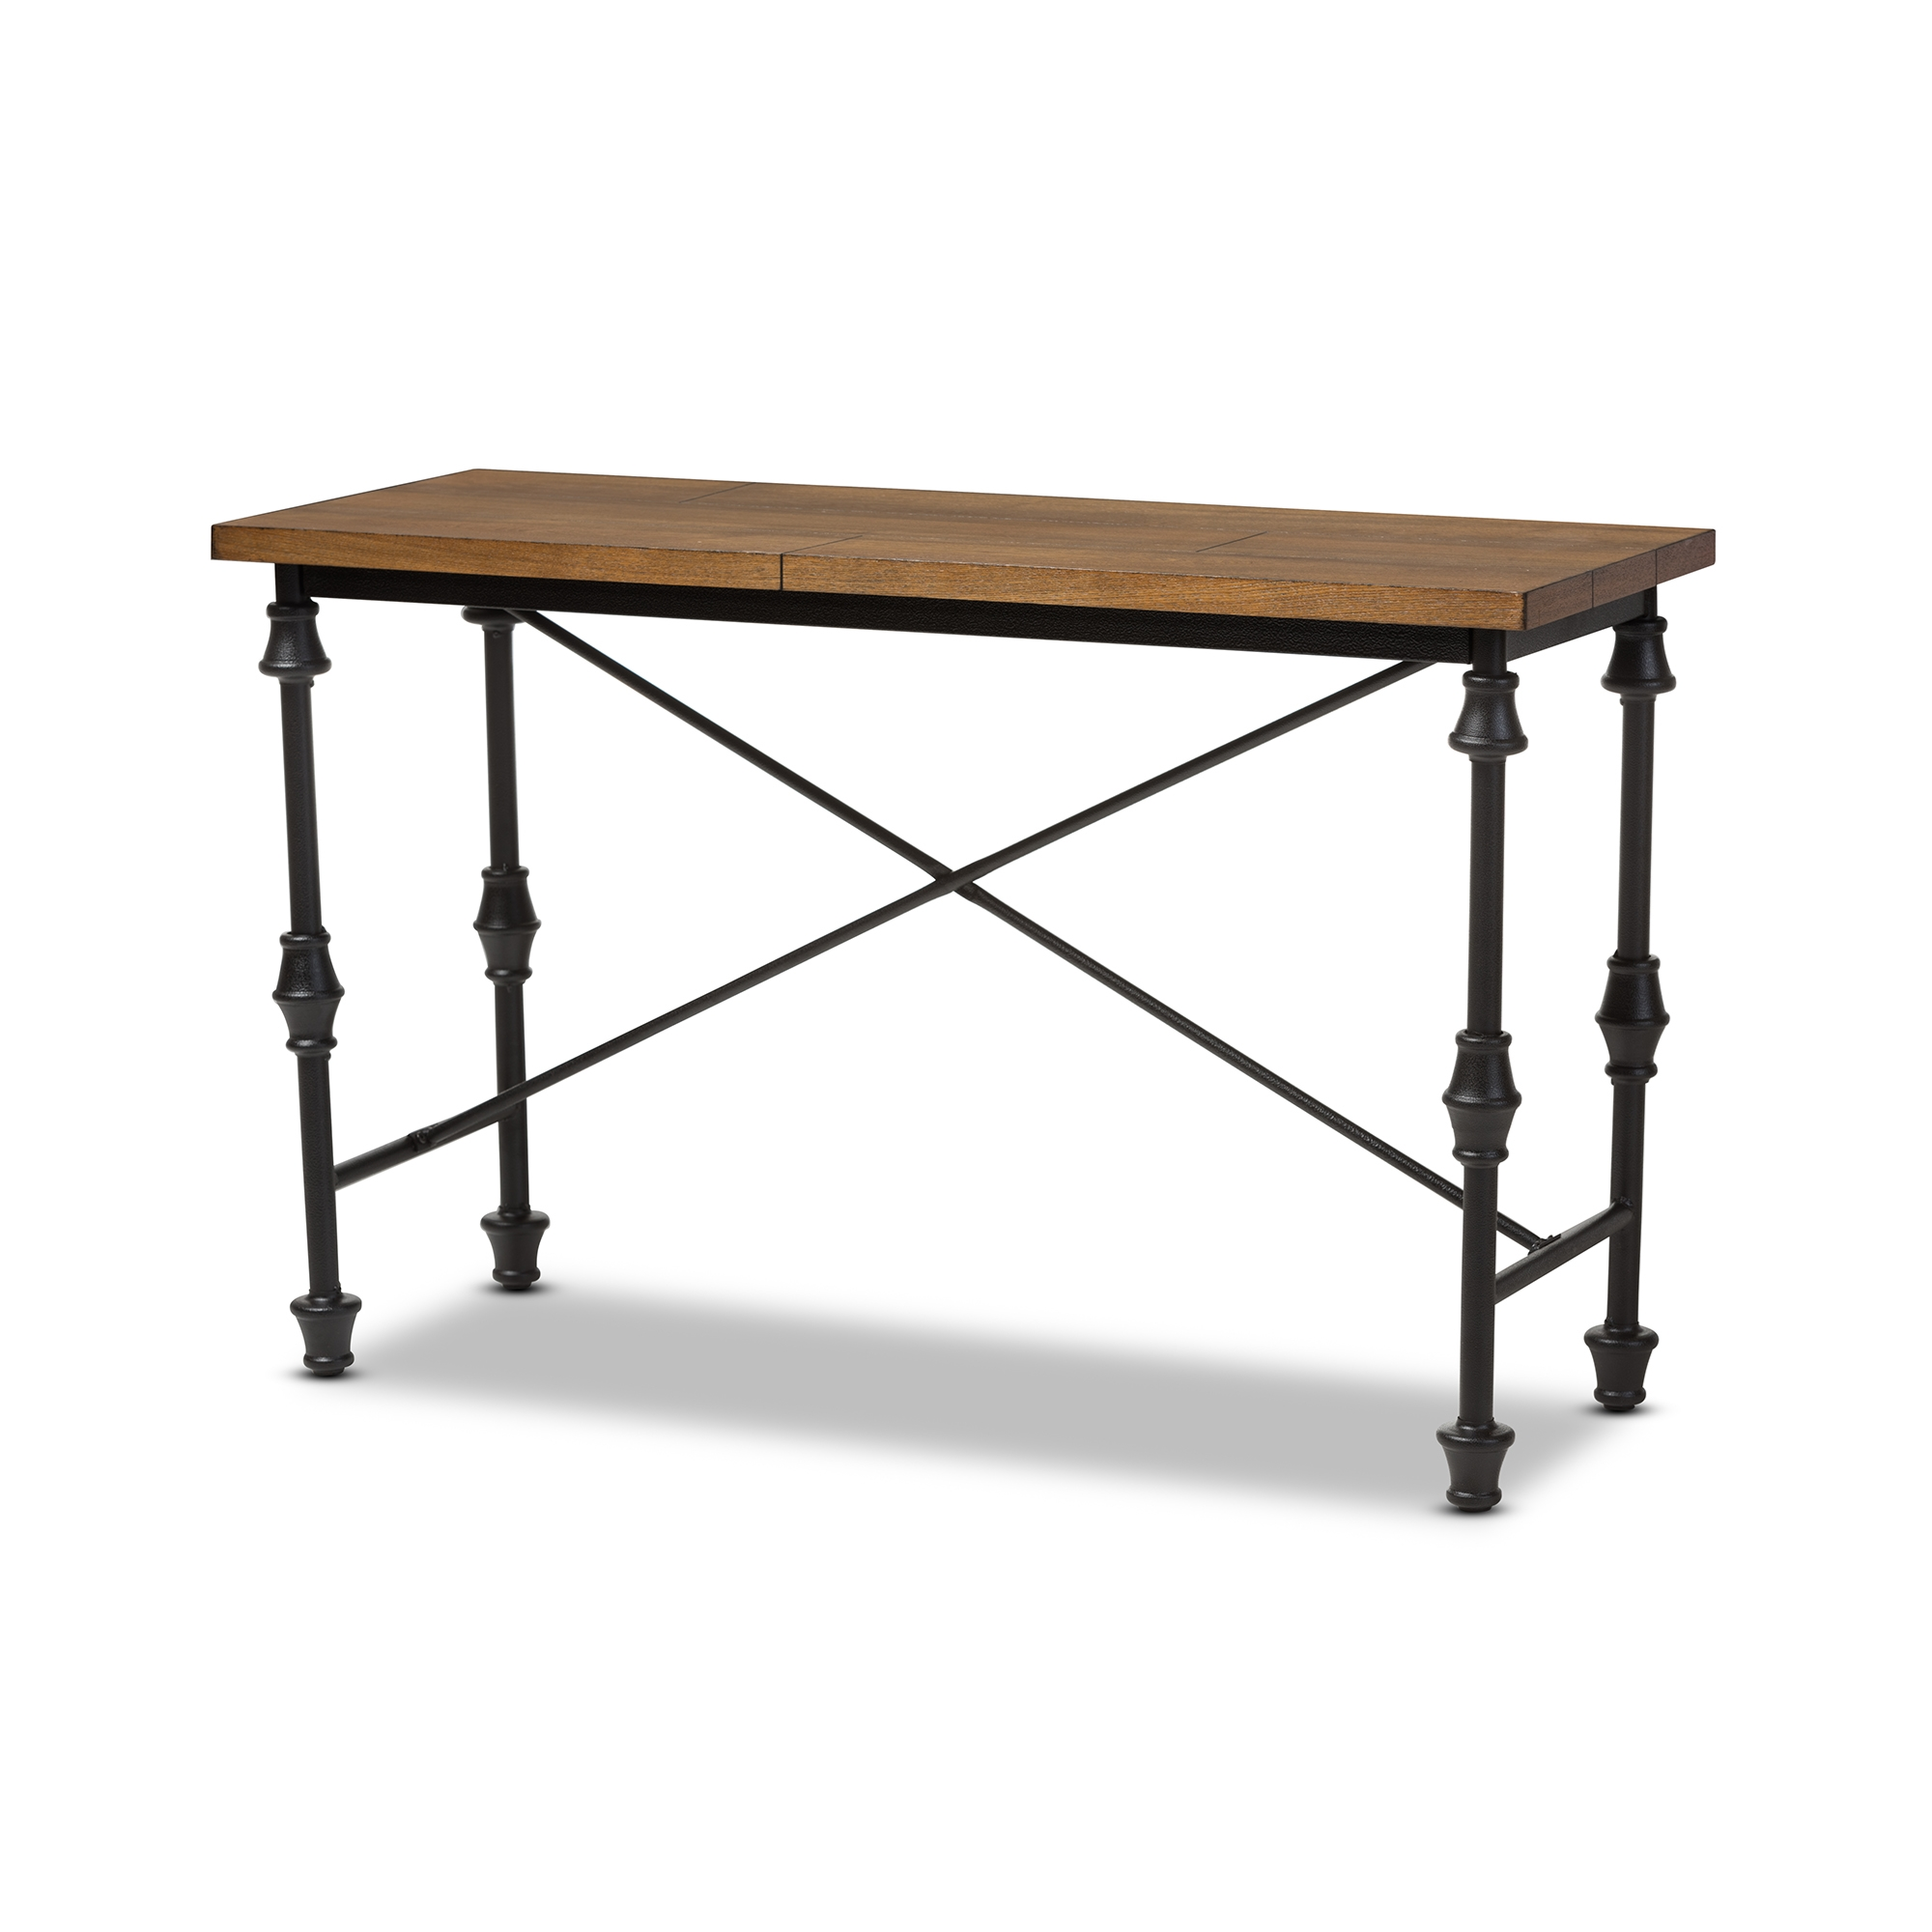 baxton studio julian rustic industrial style antique black textured finished metal distressed wood occasional console table - Cheap Console Tables